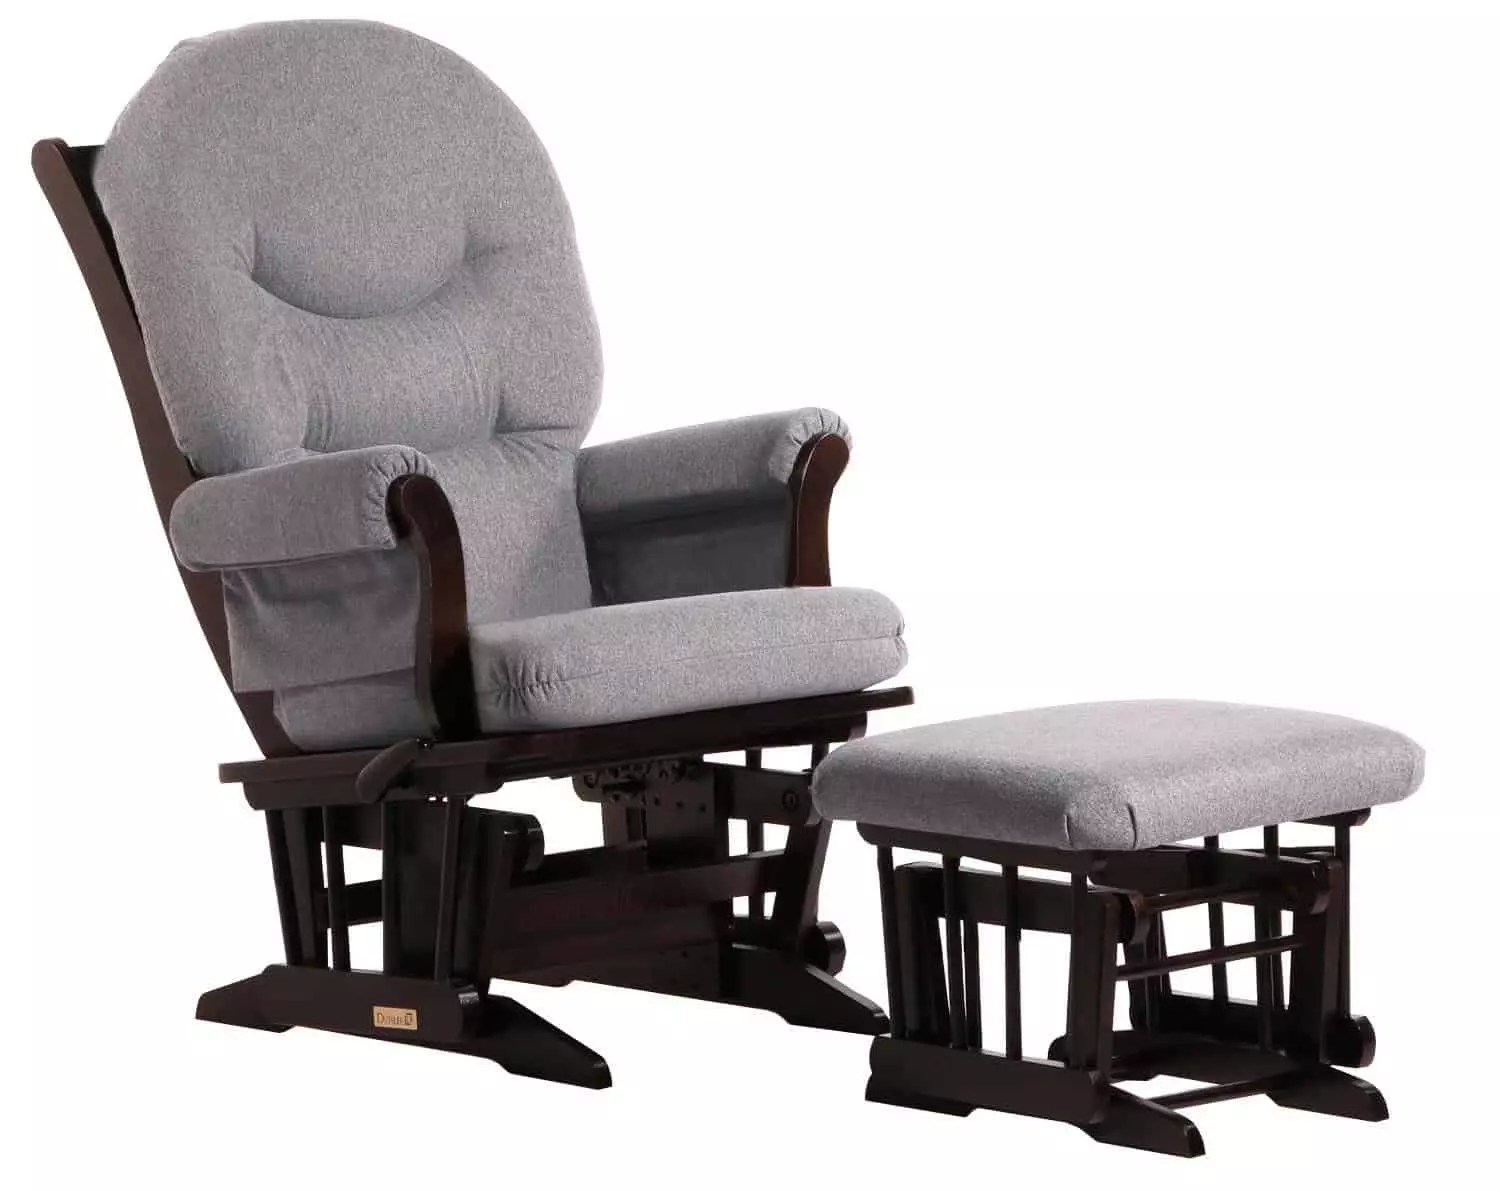 best glider chair cover hire eastbourne the rocker baby bargains